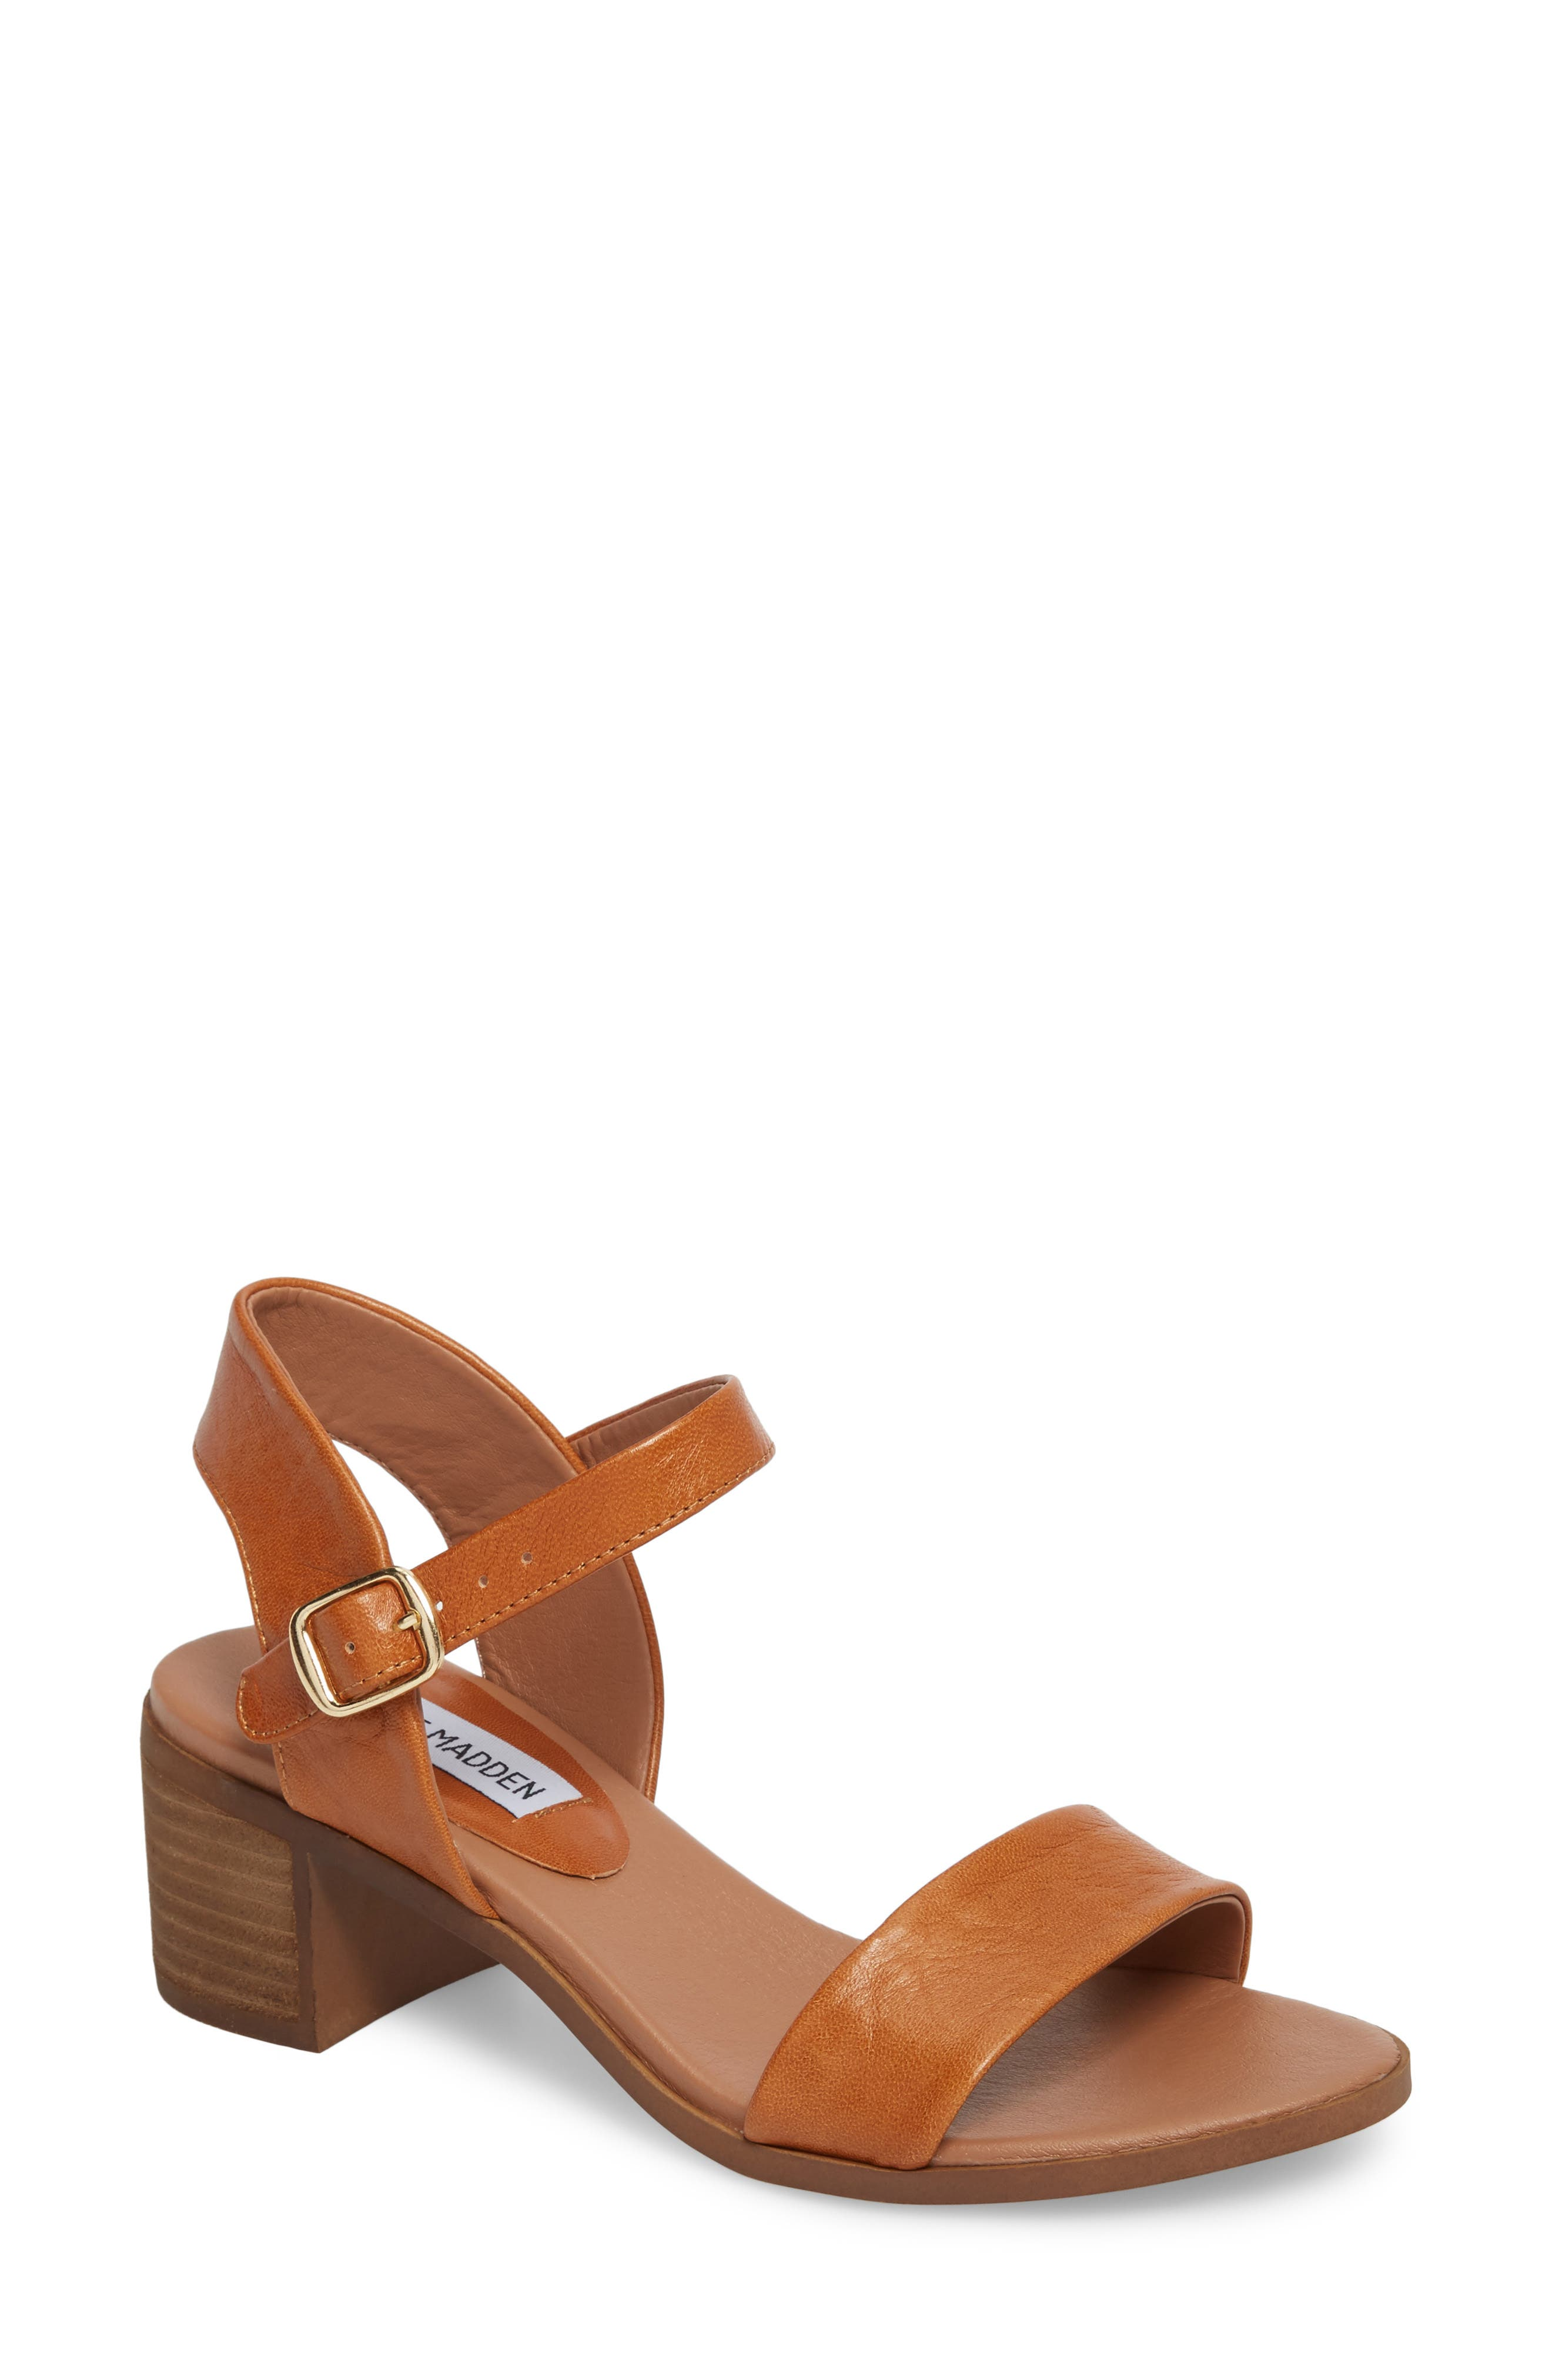 Alternate Image 1 Selected - Steve Madden April Block Heel Sandal (Women)